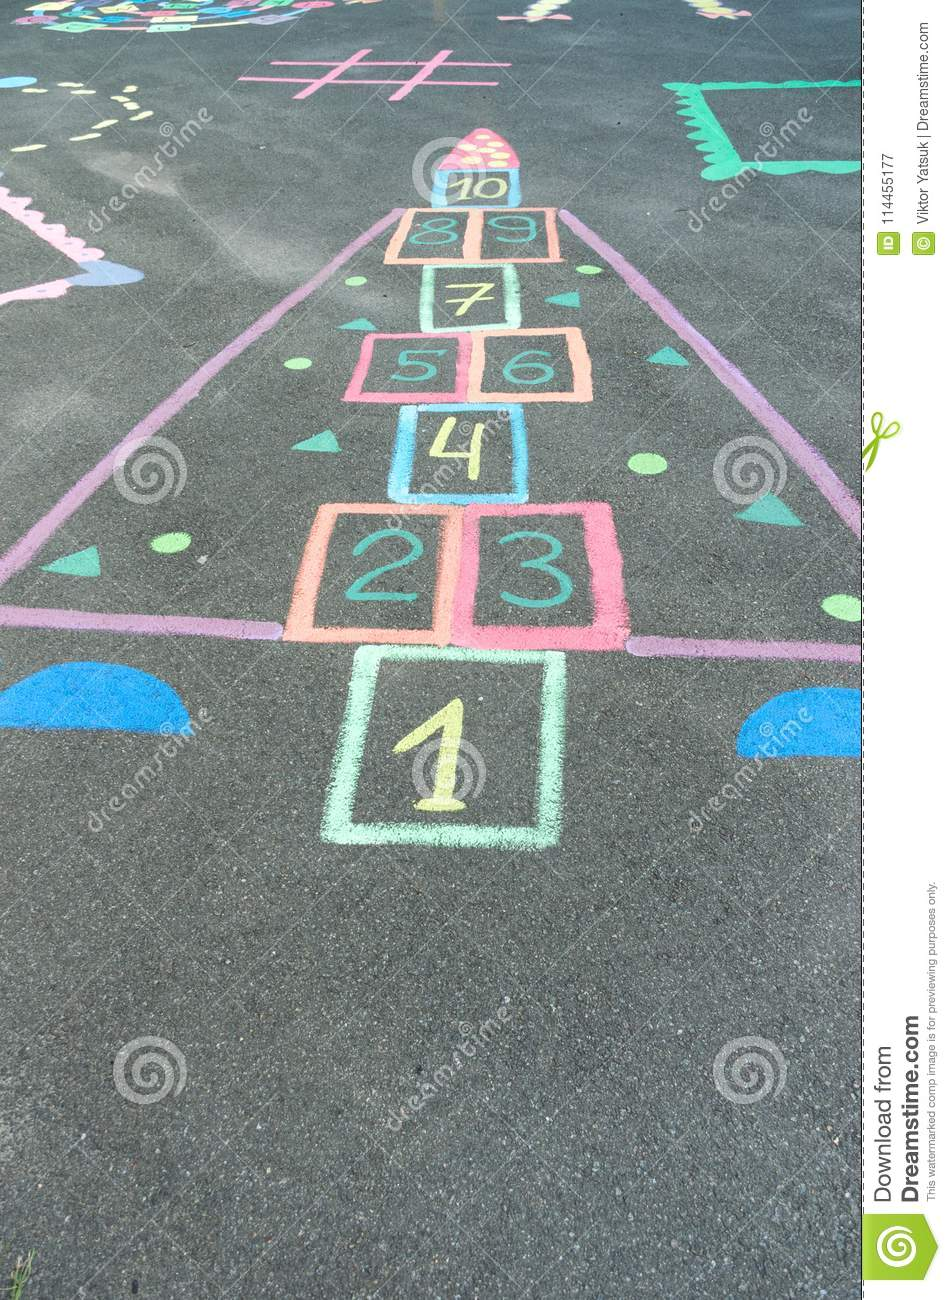 Children`s drawings on the asphalt. Drawings with colorful crayons.